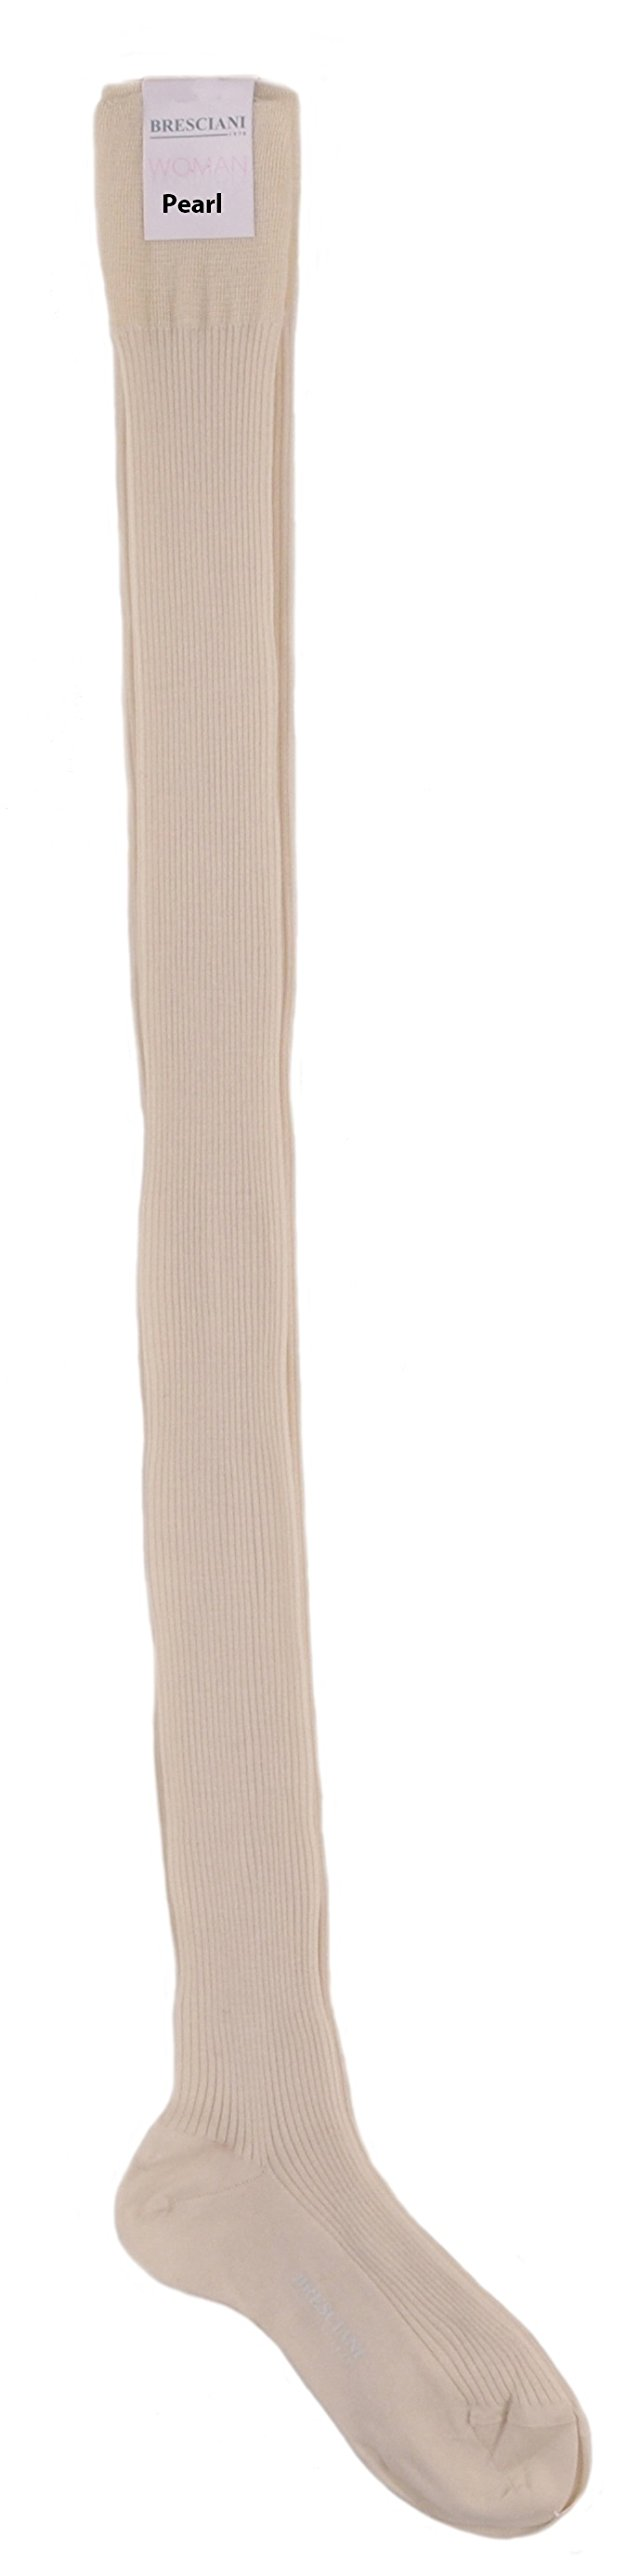 Ultimate Socks - Womens Cashmere and Silk Thigh-Highs One Pair Medium/Pearl